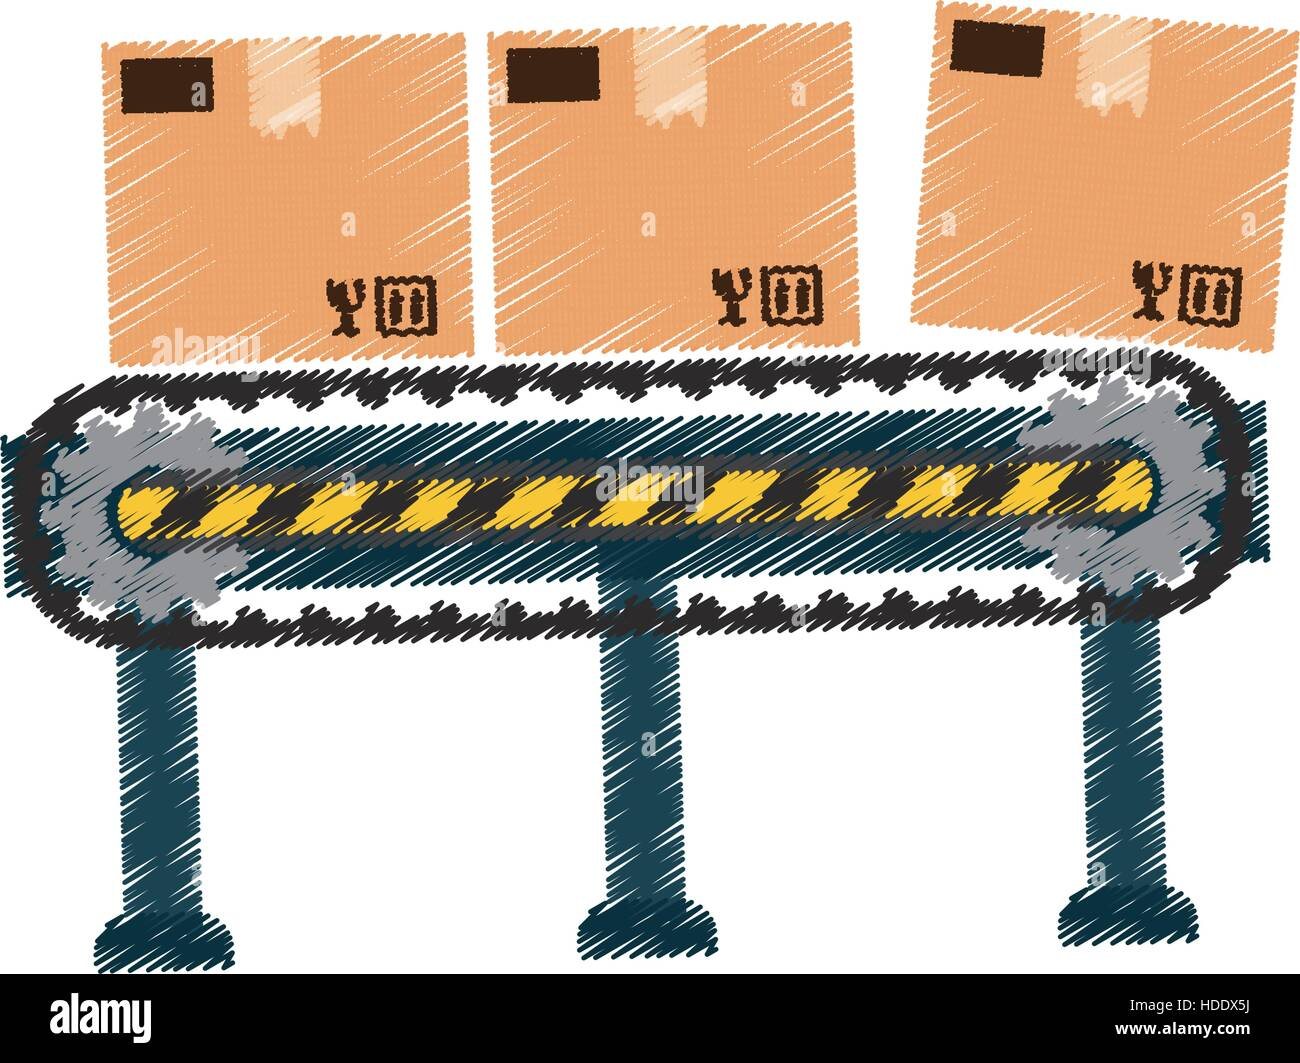 Delivery box shipping - Stock Vector